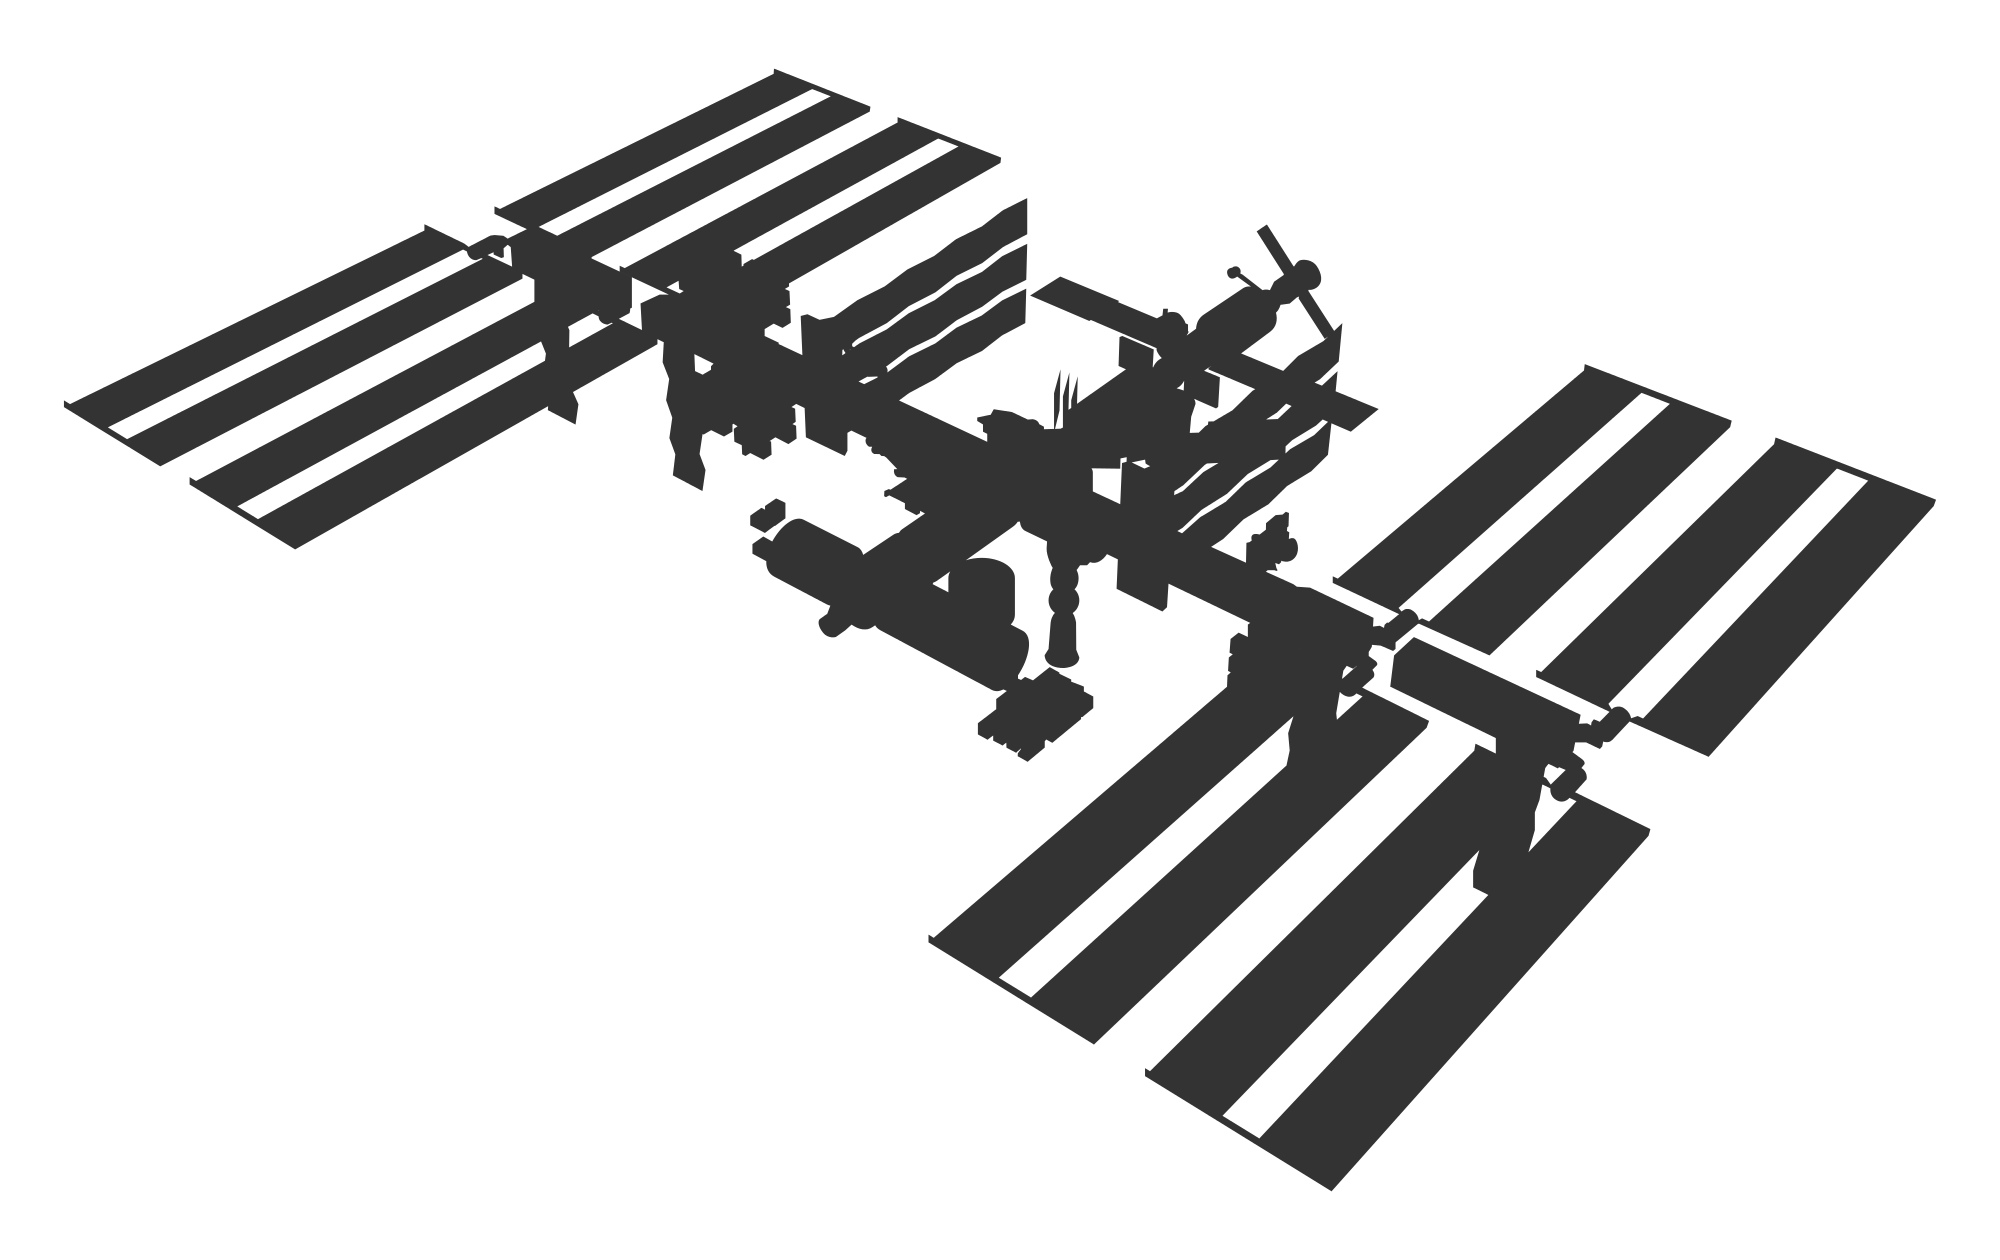 Iss PNG - 70199